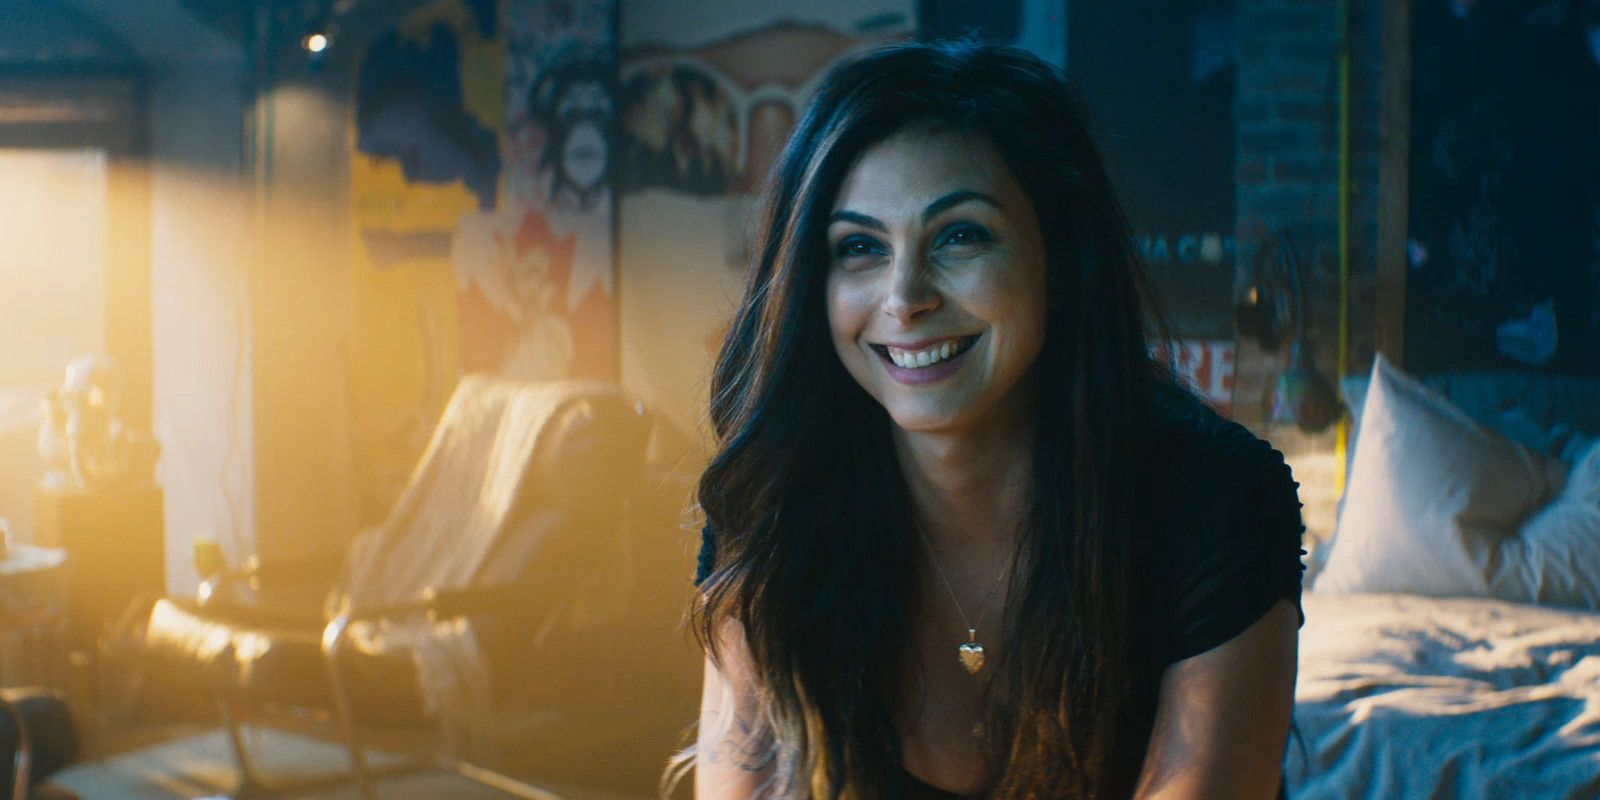 Morena Baccarin as Vanessa in Deadpool 2 Morena Baccarin Wants to Play a DC Movie Villain Like Catwoman & Poison Ivy